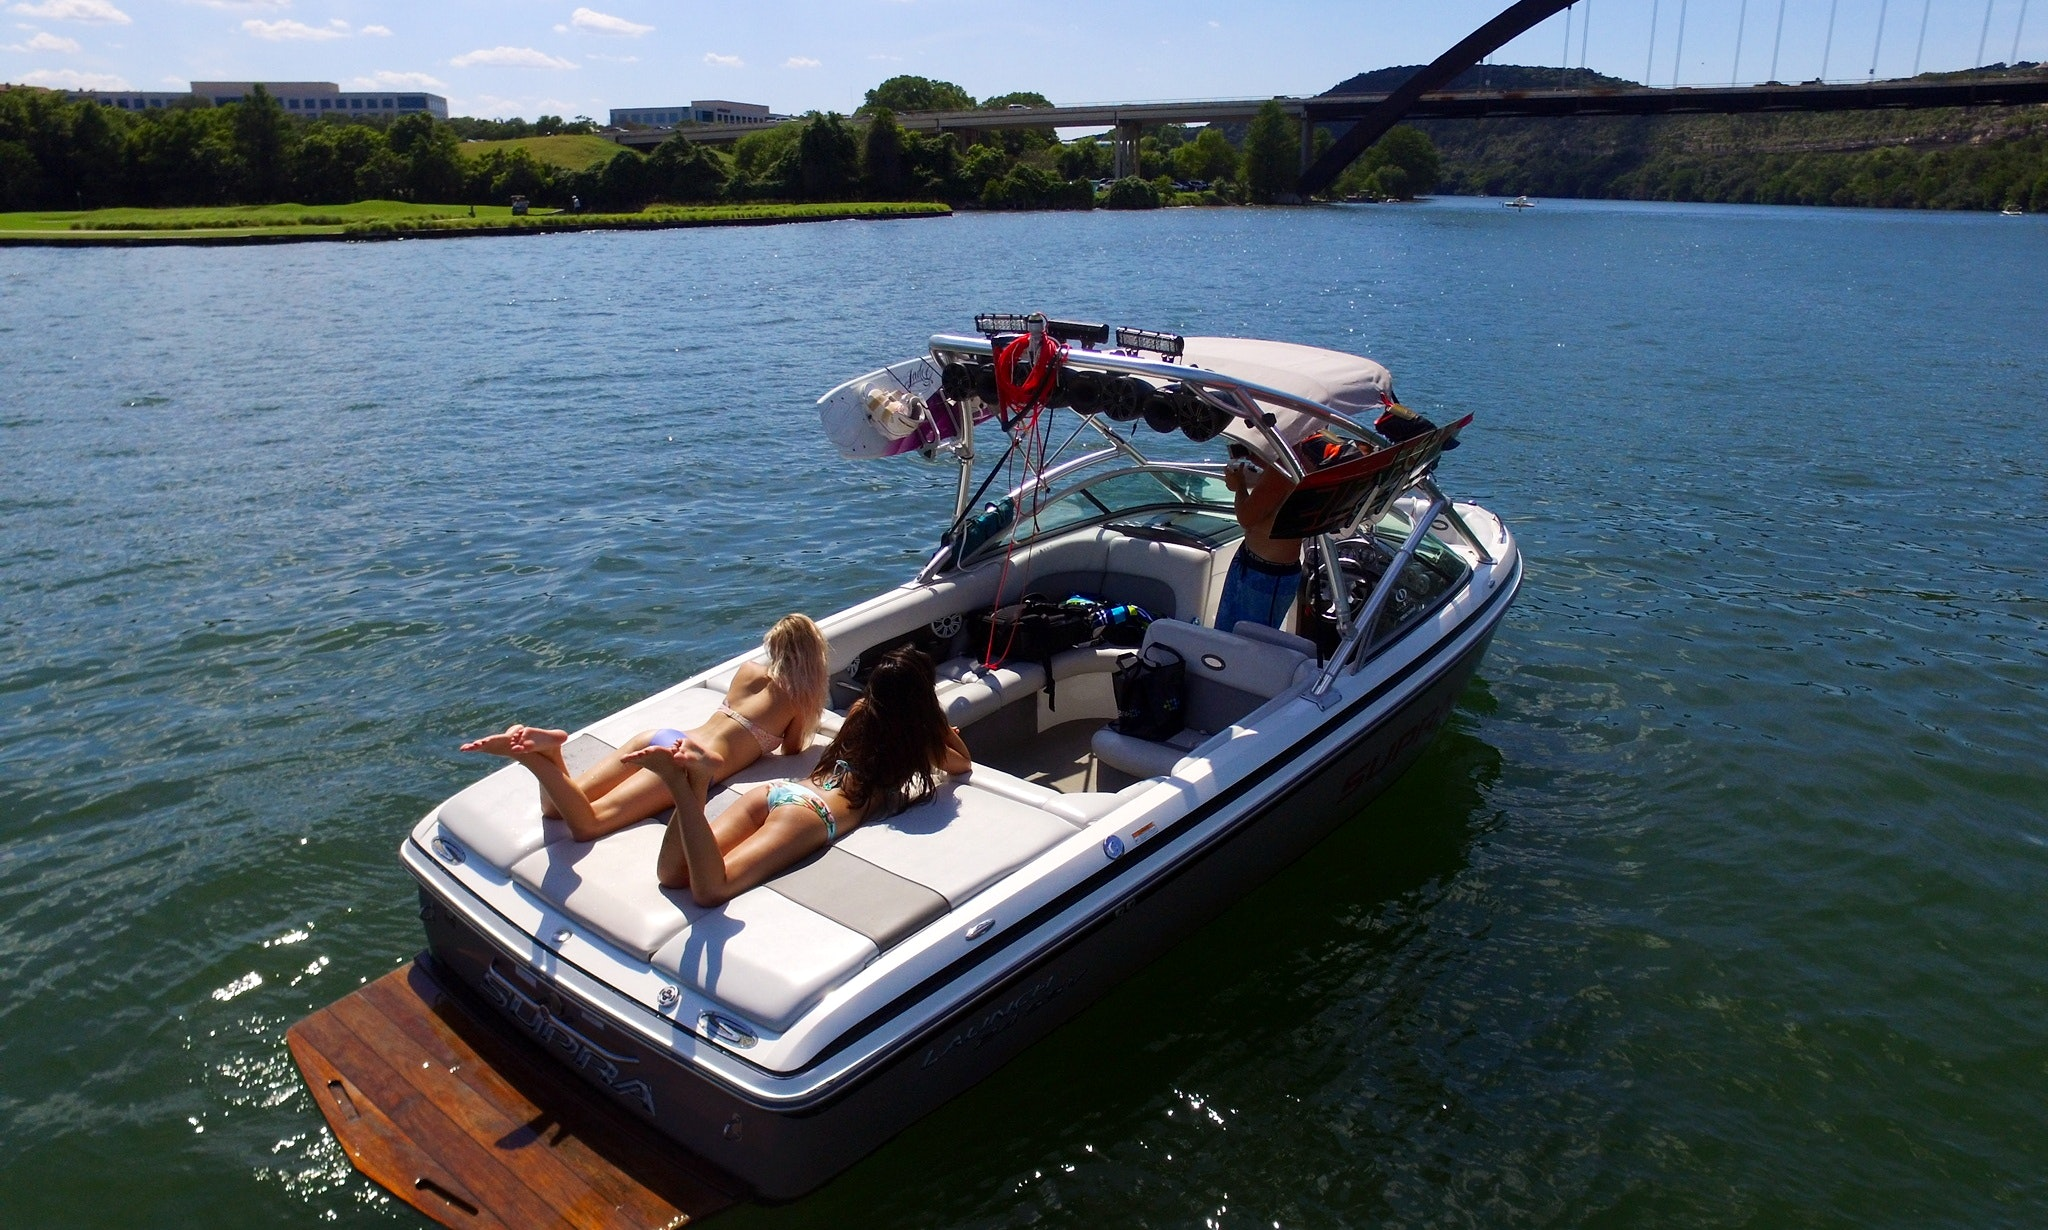 24ft Supra Rental on Lake Travis or Austin!!